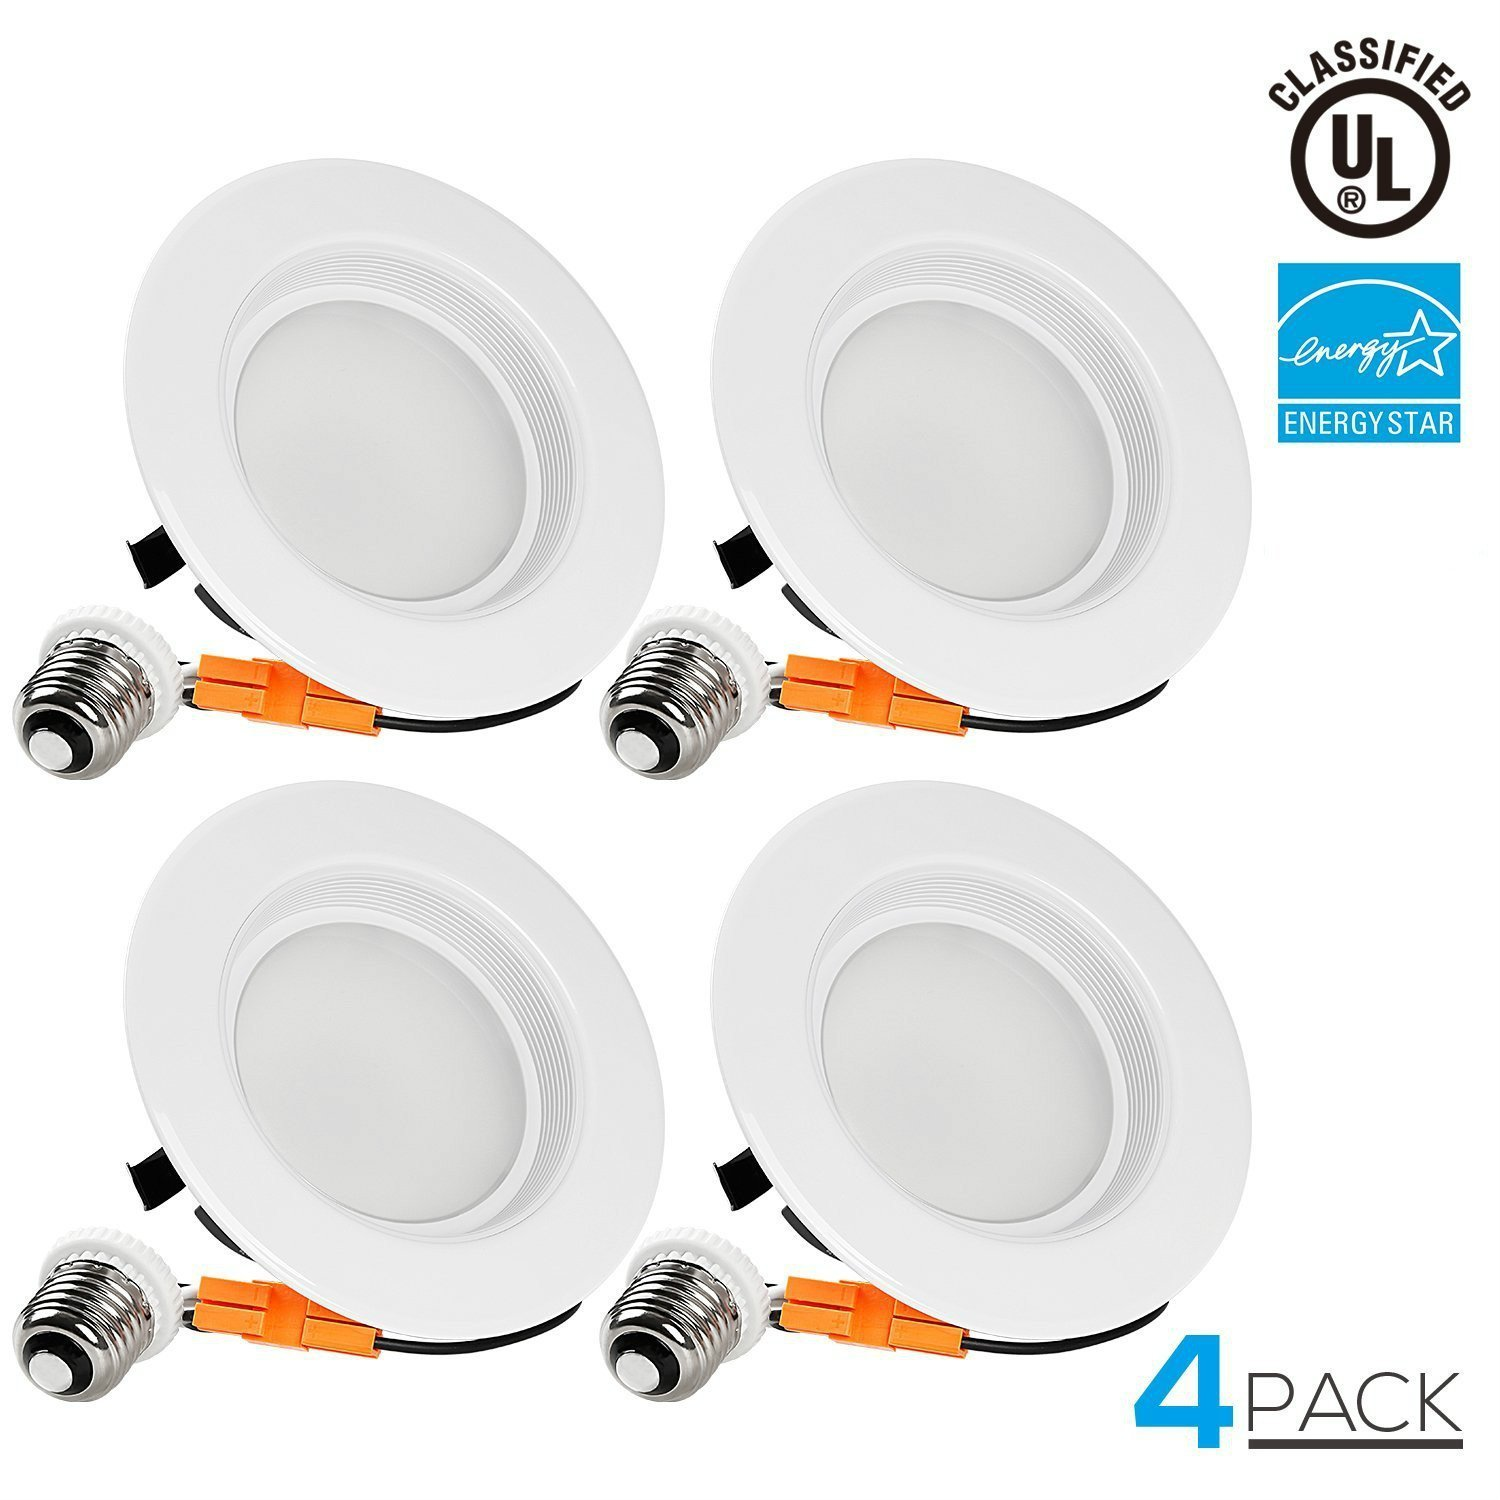 4 PACK Wet Location 4-inch Dimmable Recessed LED Downlight, 13W (85W Equivalent), ENERGY STAR, 5000K Daylight, 800lm, Retrofit LED Recessed Lighting Fixture, 5 YEAR WARRANTY by TORCHSTAR